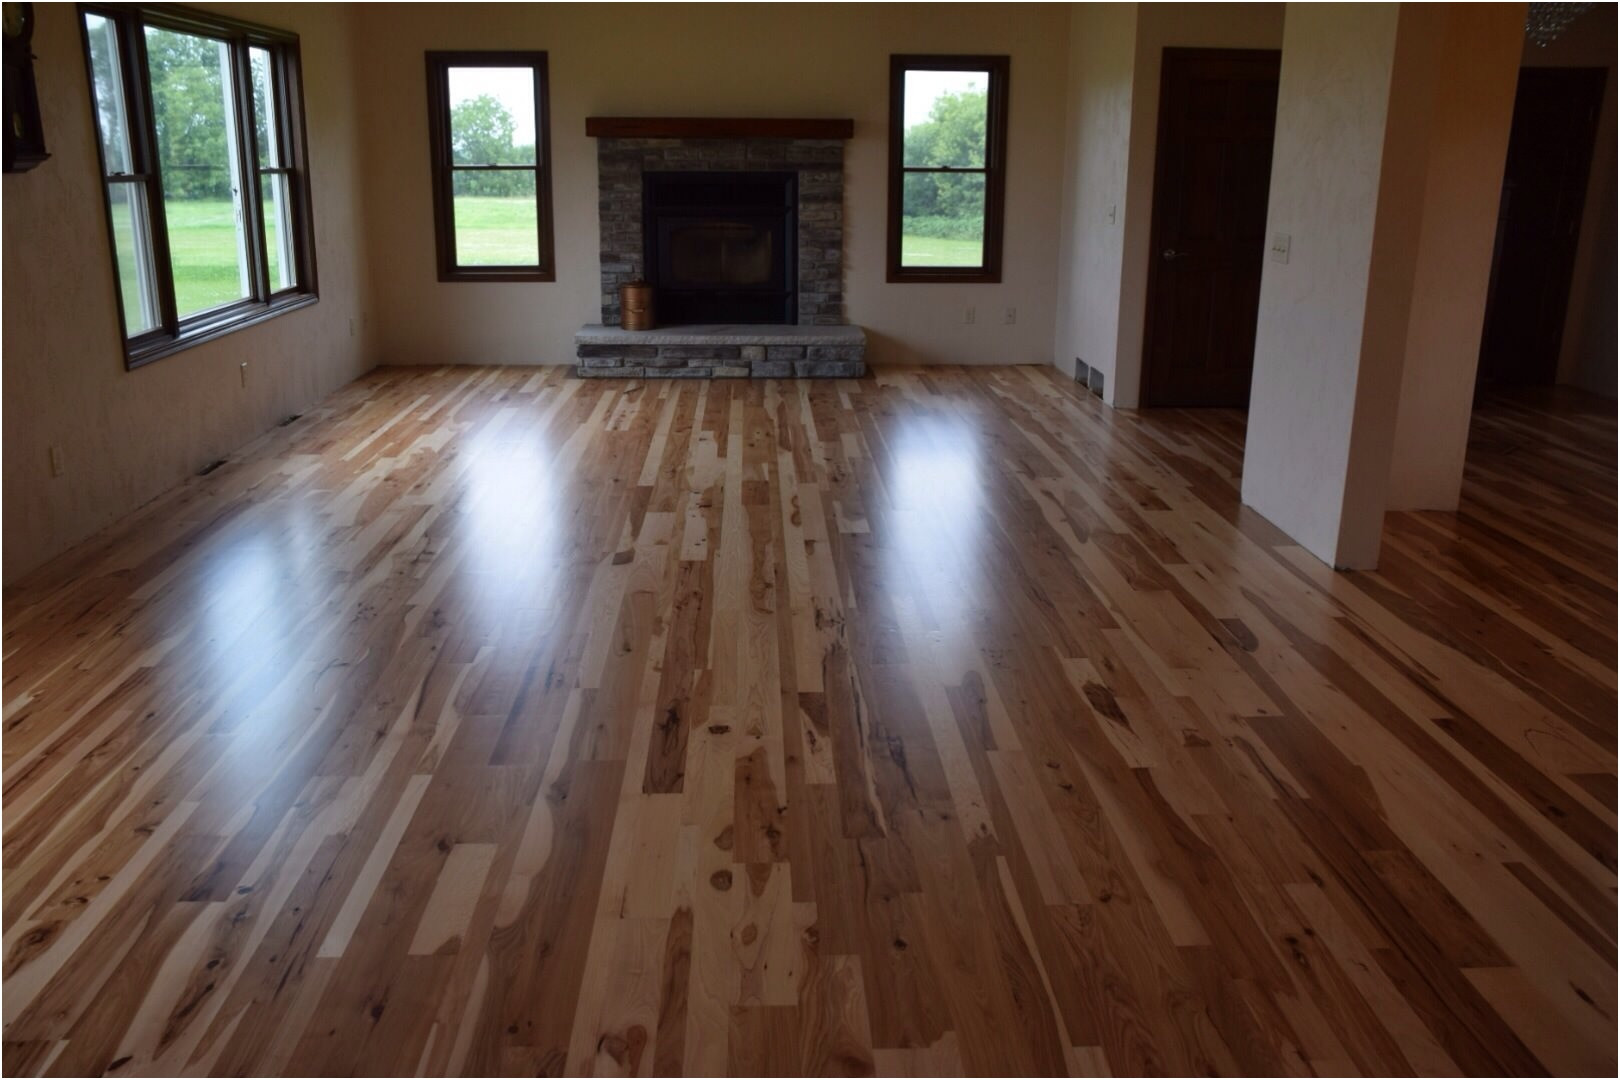 canadian hardwood flooring reviews of prefinished hardwood flooring pros and cons images floor hickory throughout prefinished hardwood flooring pros and cons images floor hickory wood floors reviews for sale durability s